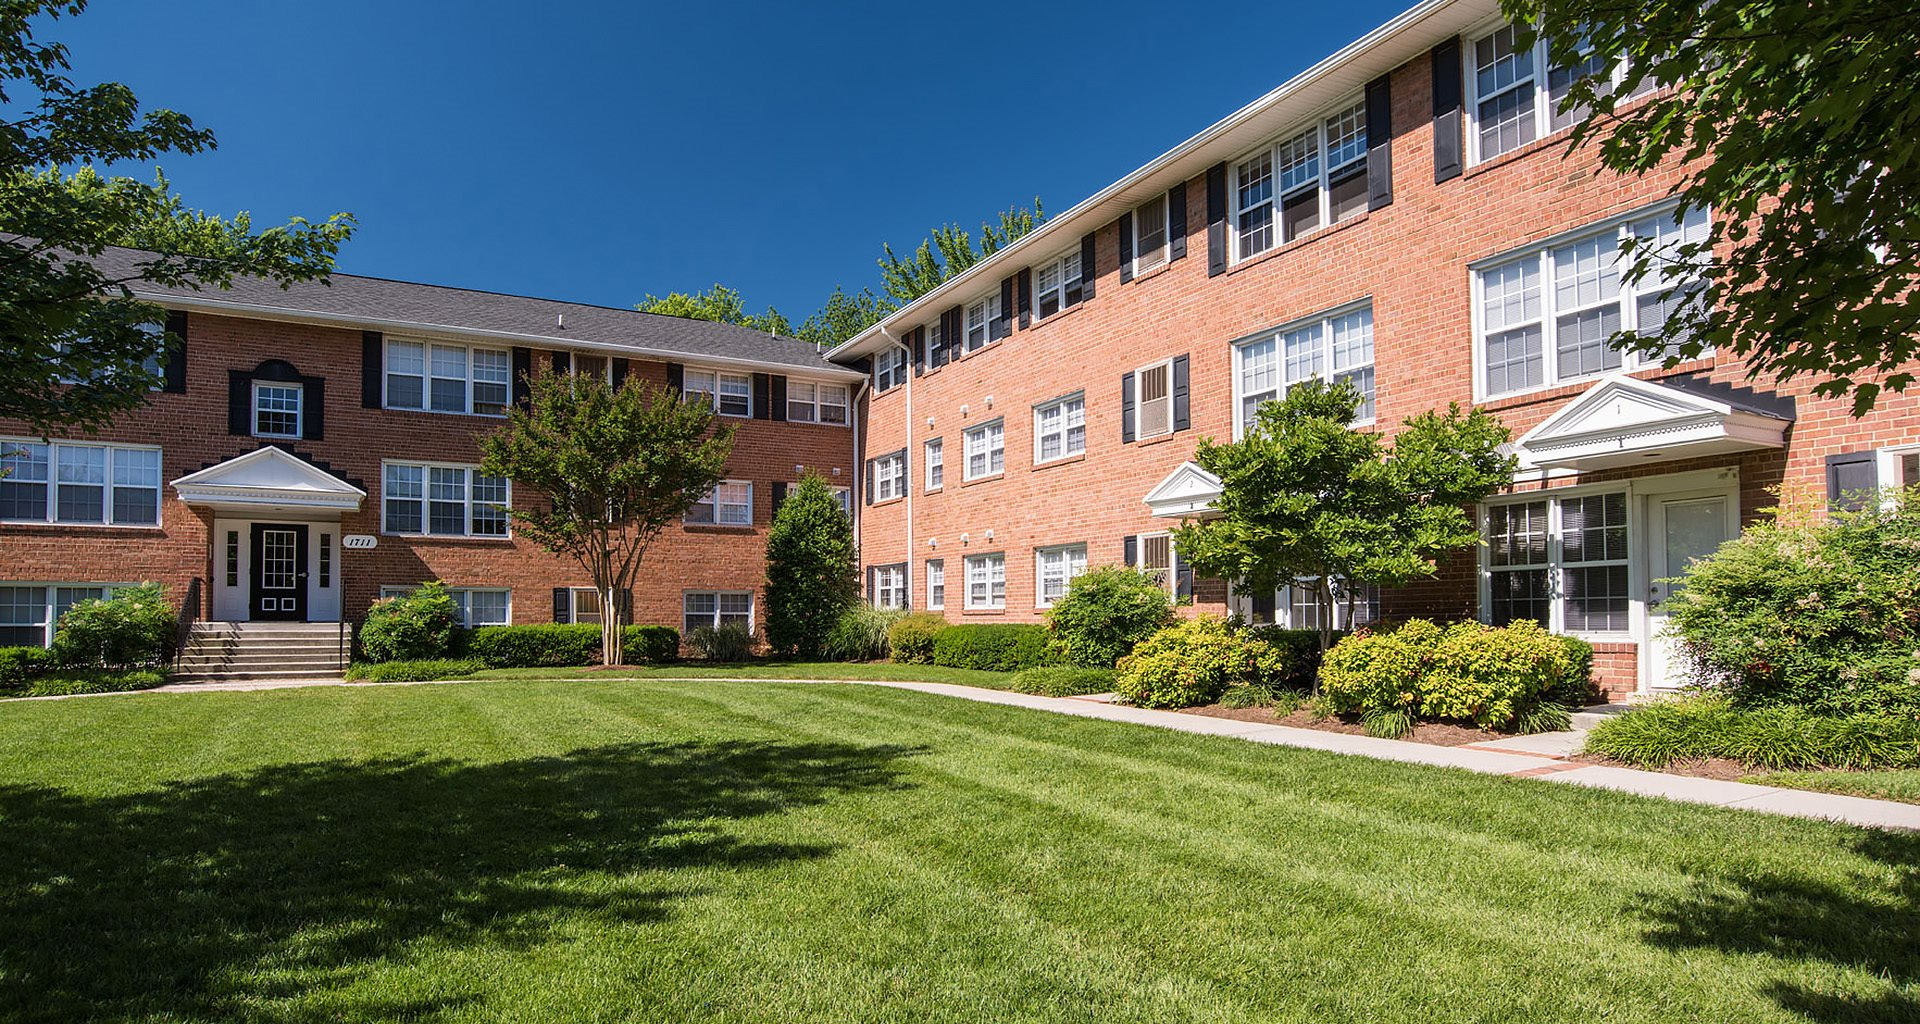 Glebe Road Arlington Va Apartments